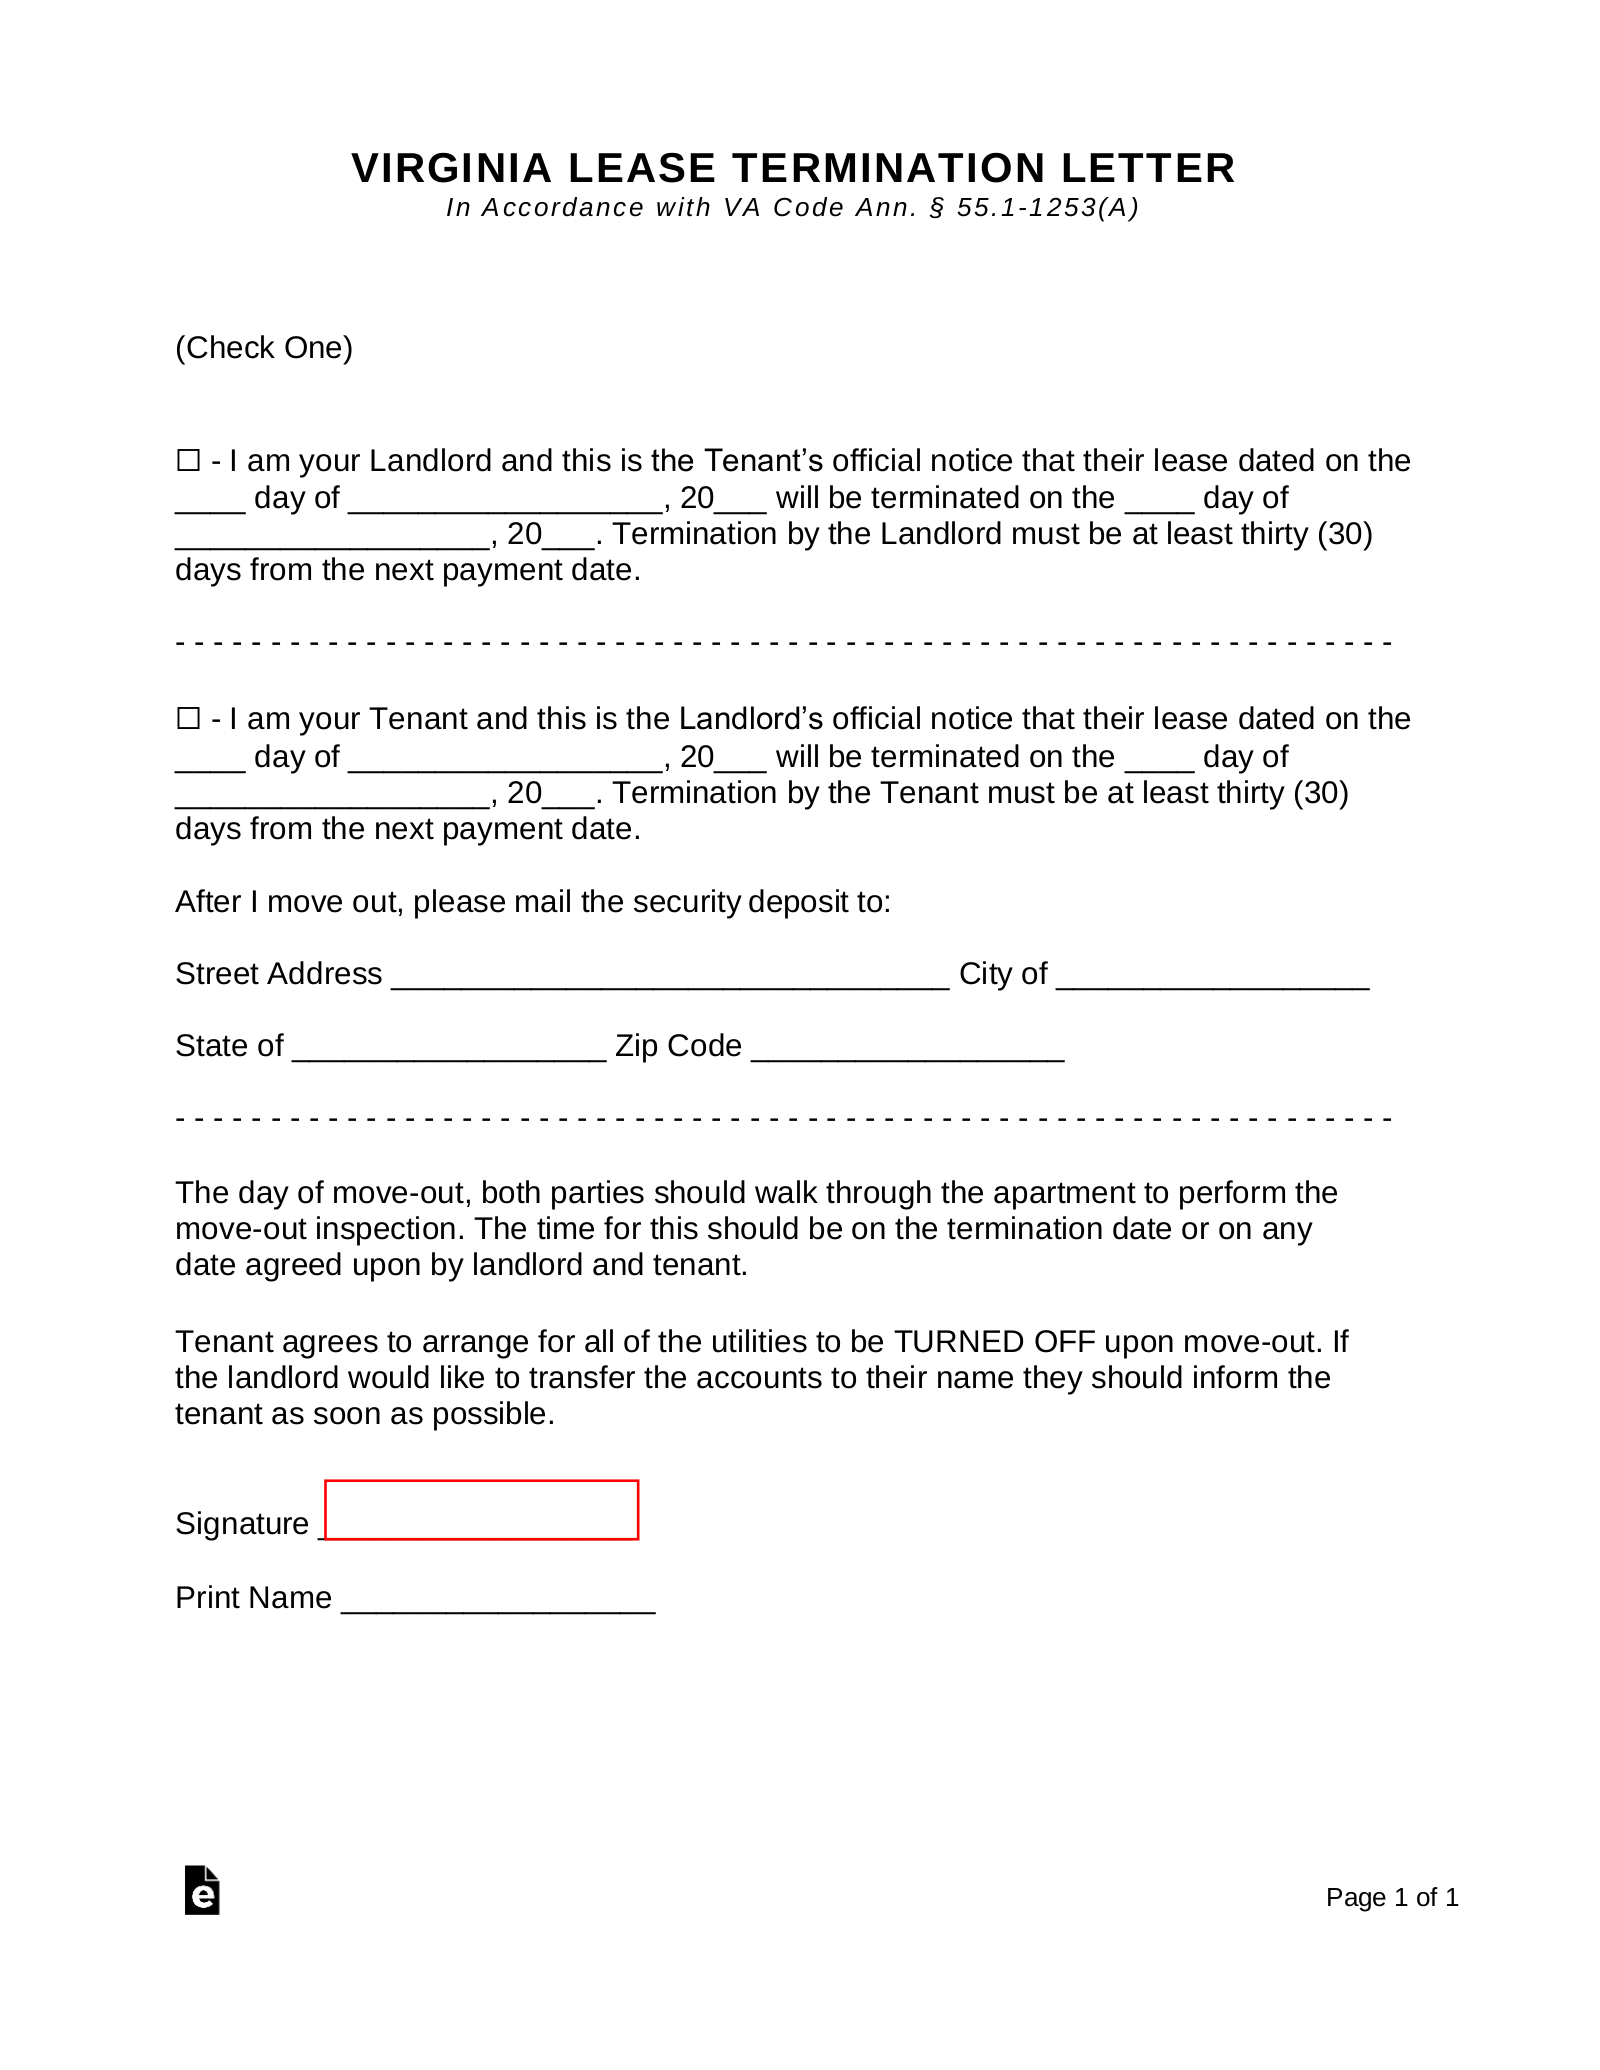 Virginia Lease Termination Letter Form 30 Day Notice